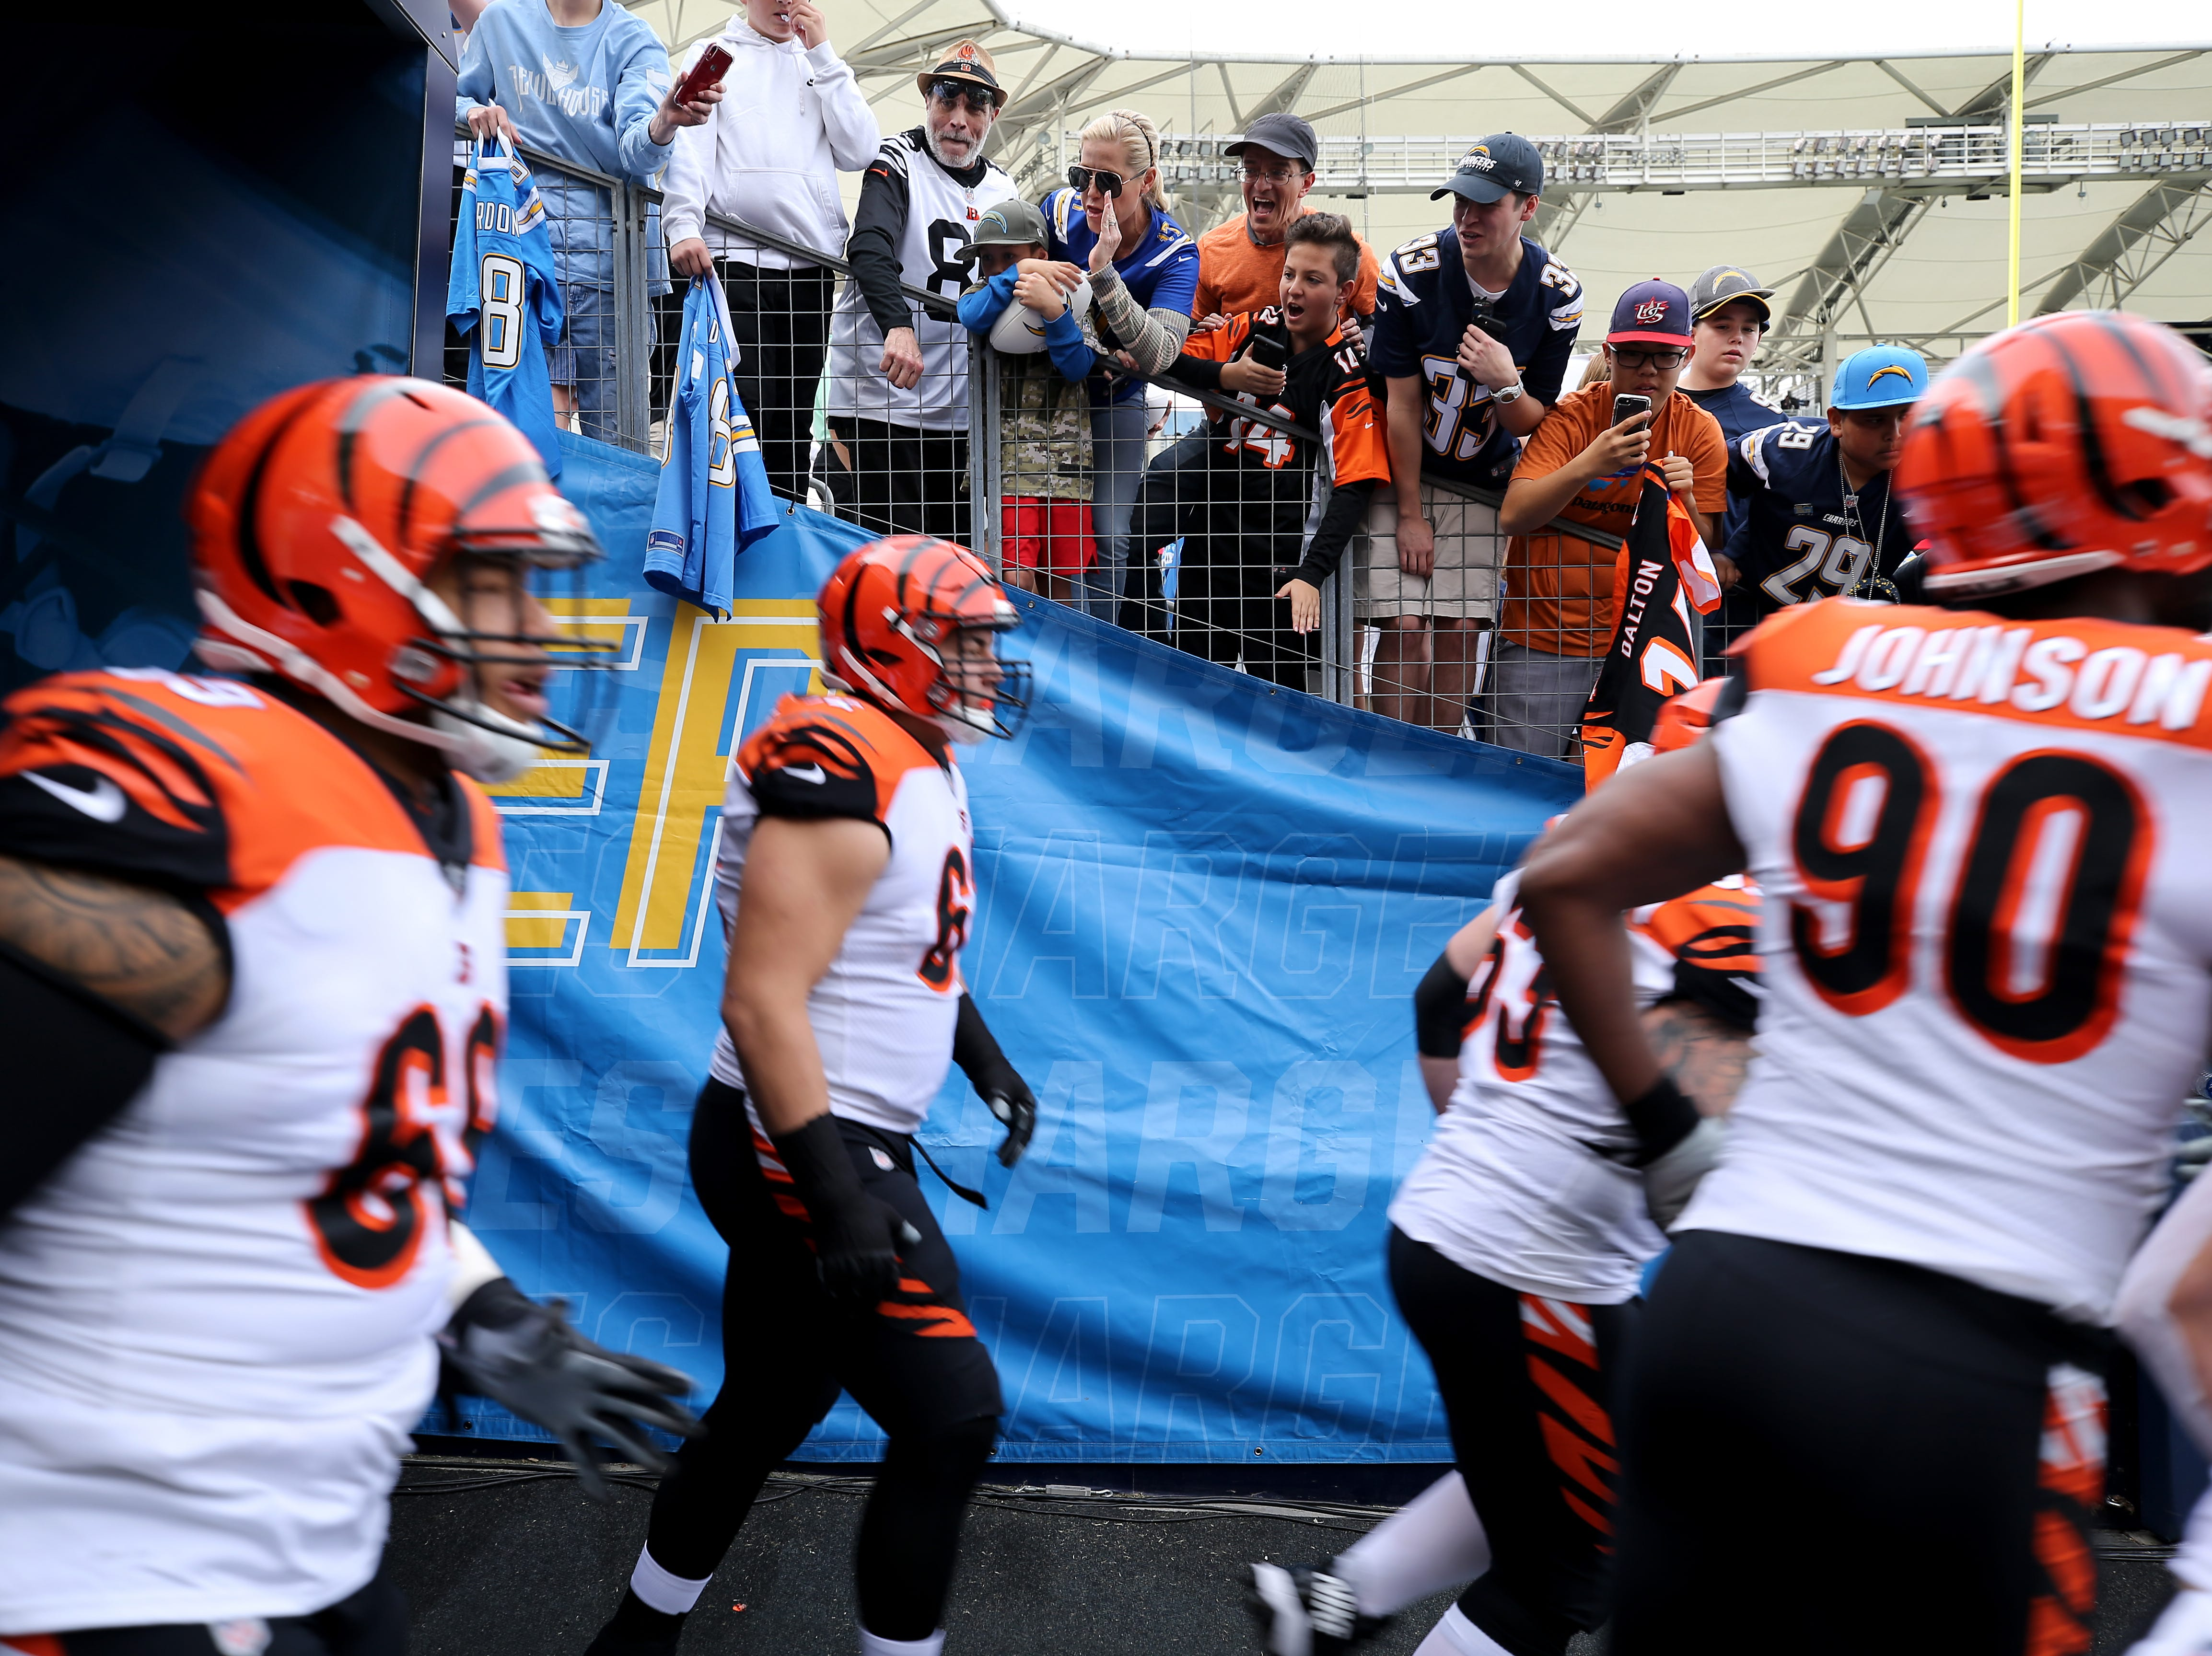 The Cincinnati Bengals offense is greater by fans as they take the field for warmups before a Week 14 NFL football game against the Los Angeles Chargers, Sunday, Dec. 9, 2018, at StubHub Center in Carson, California.